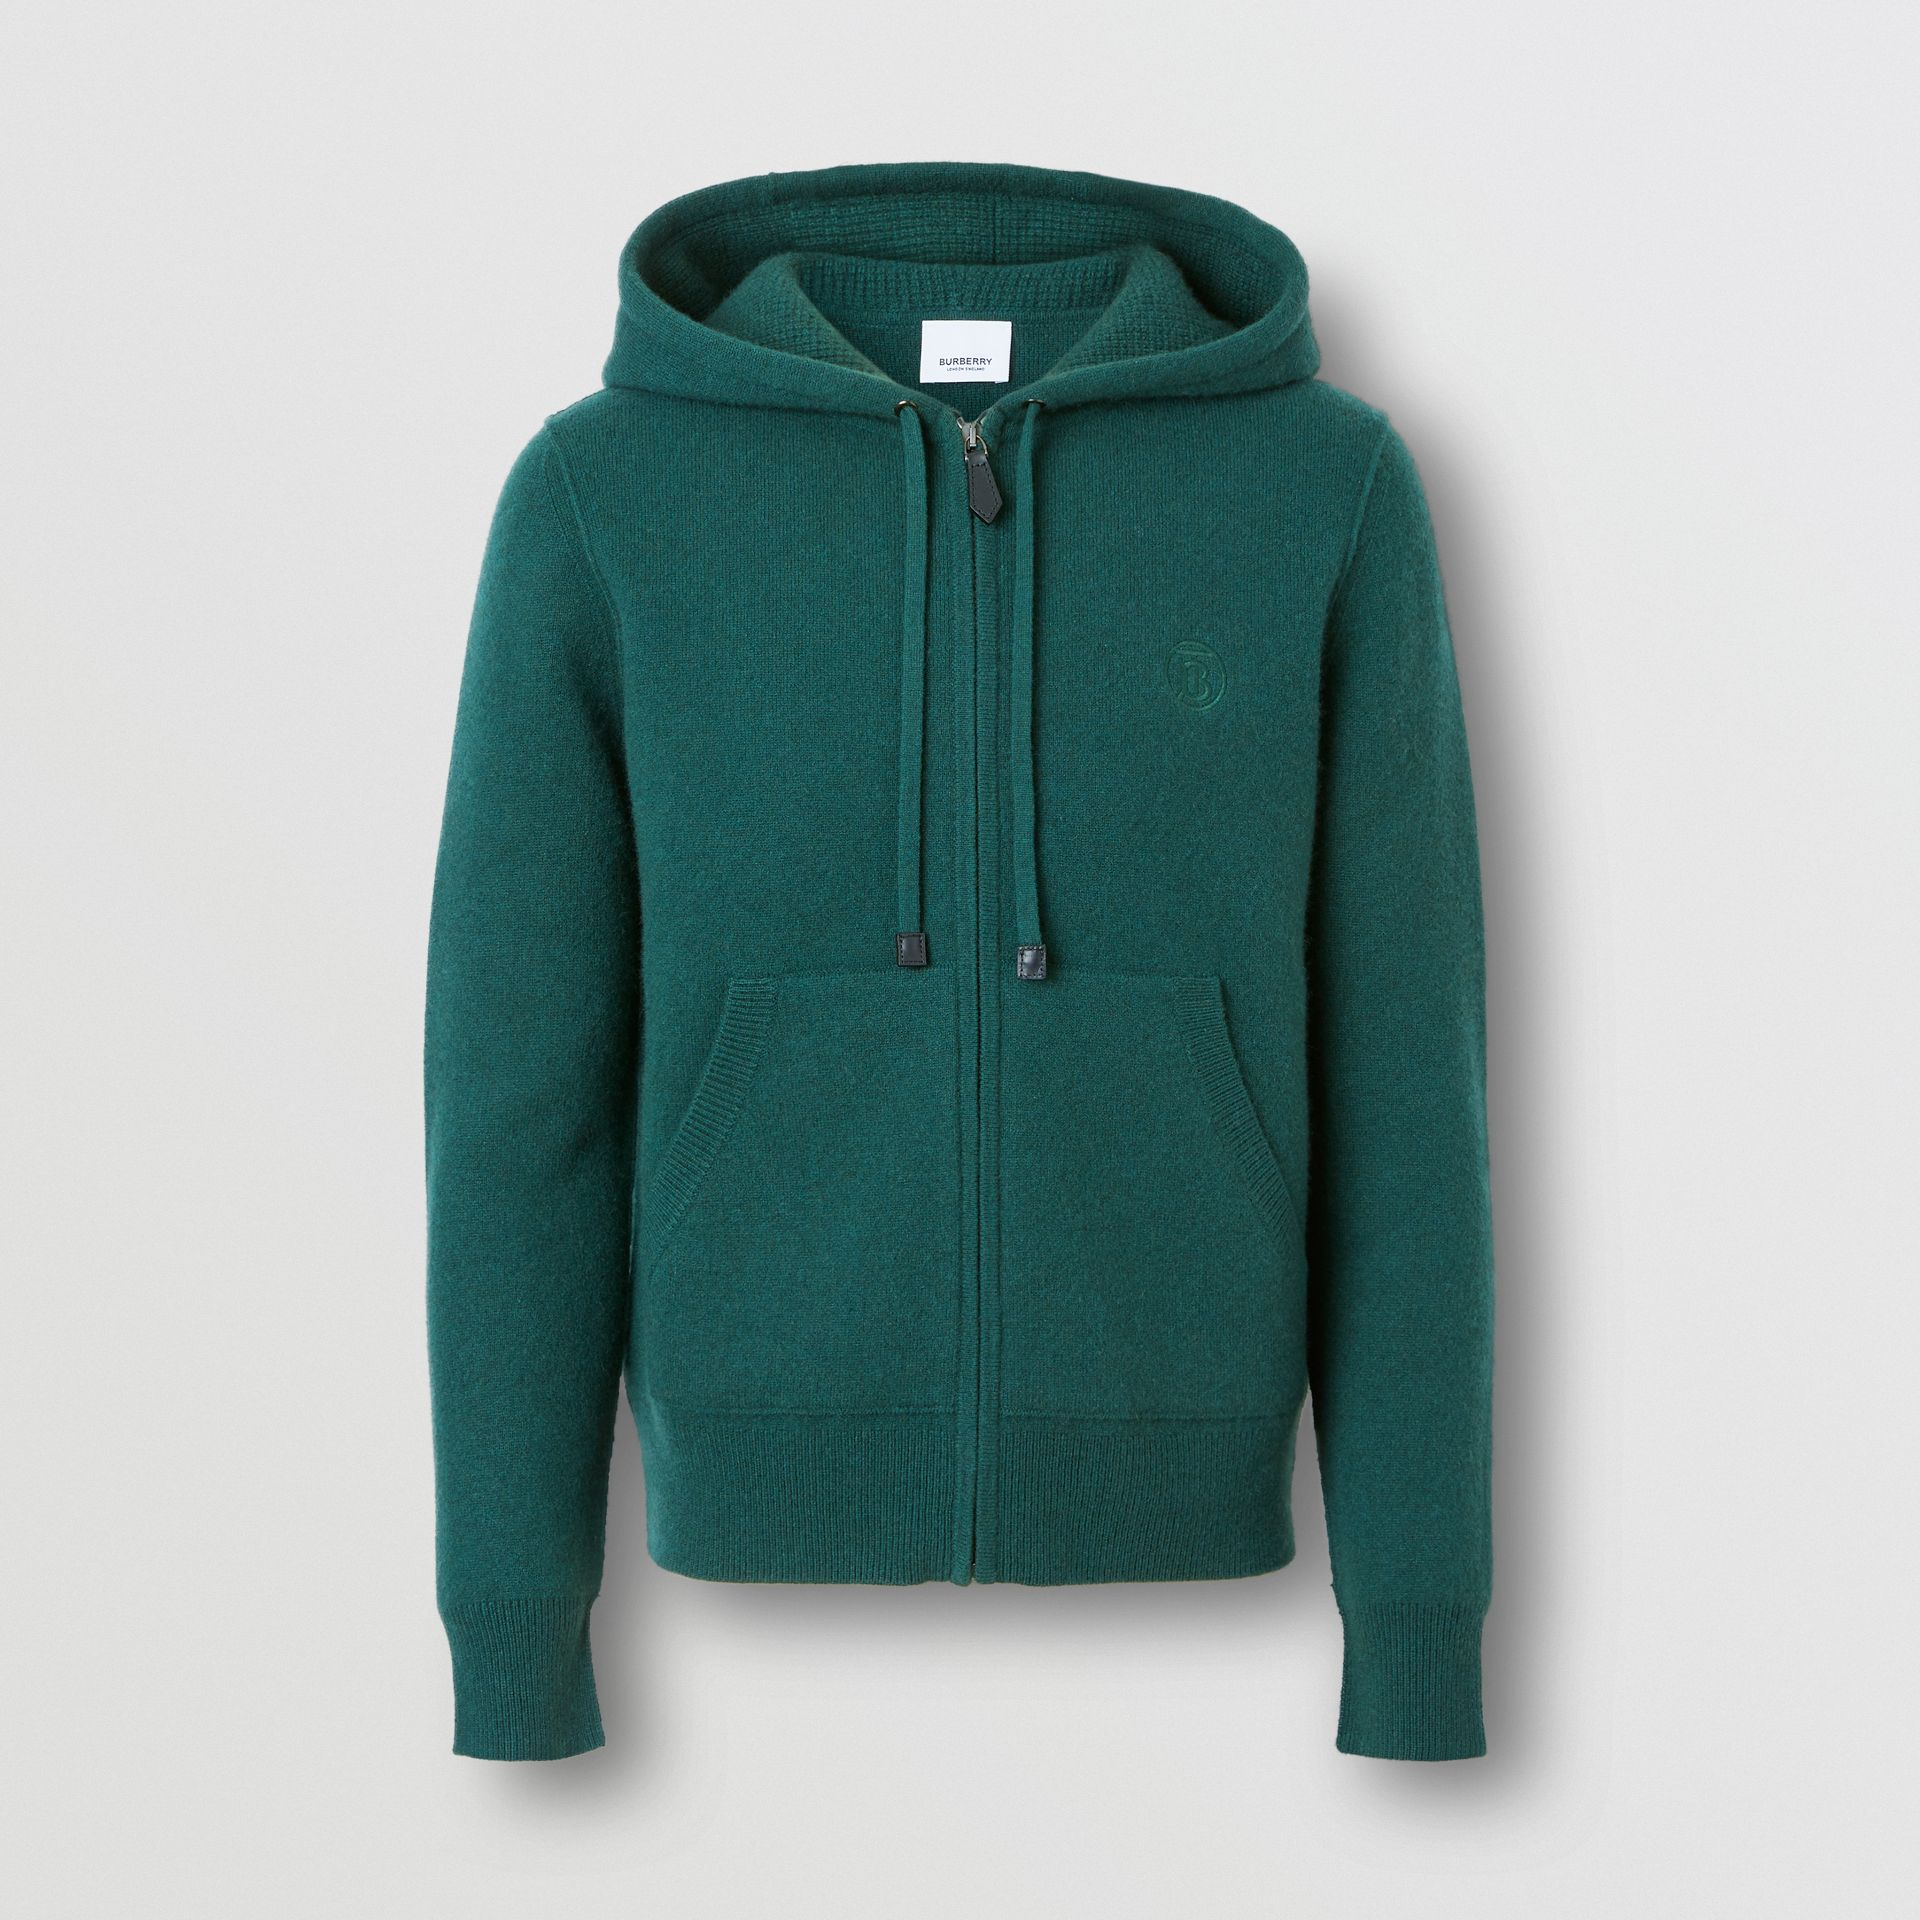 Monogram Motif Cashmere Blend Hooded Top in Bottle Green - Women | Burberry - gallery image 3